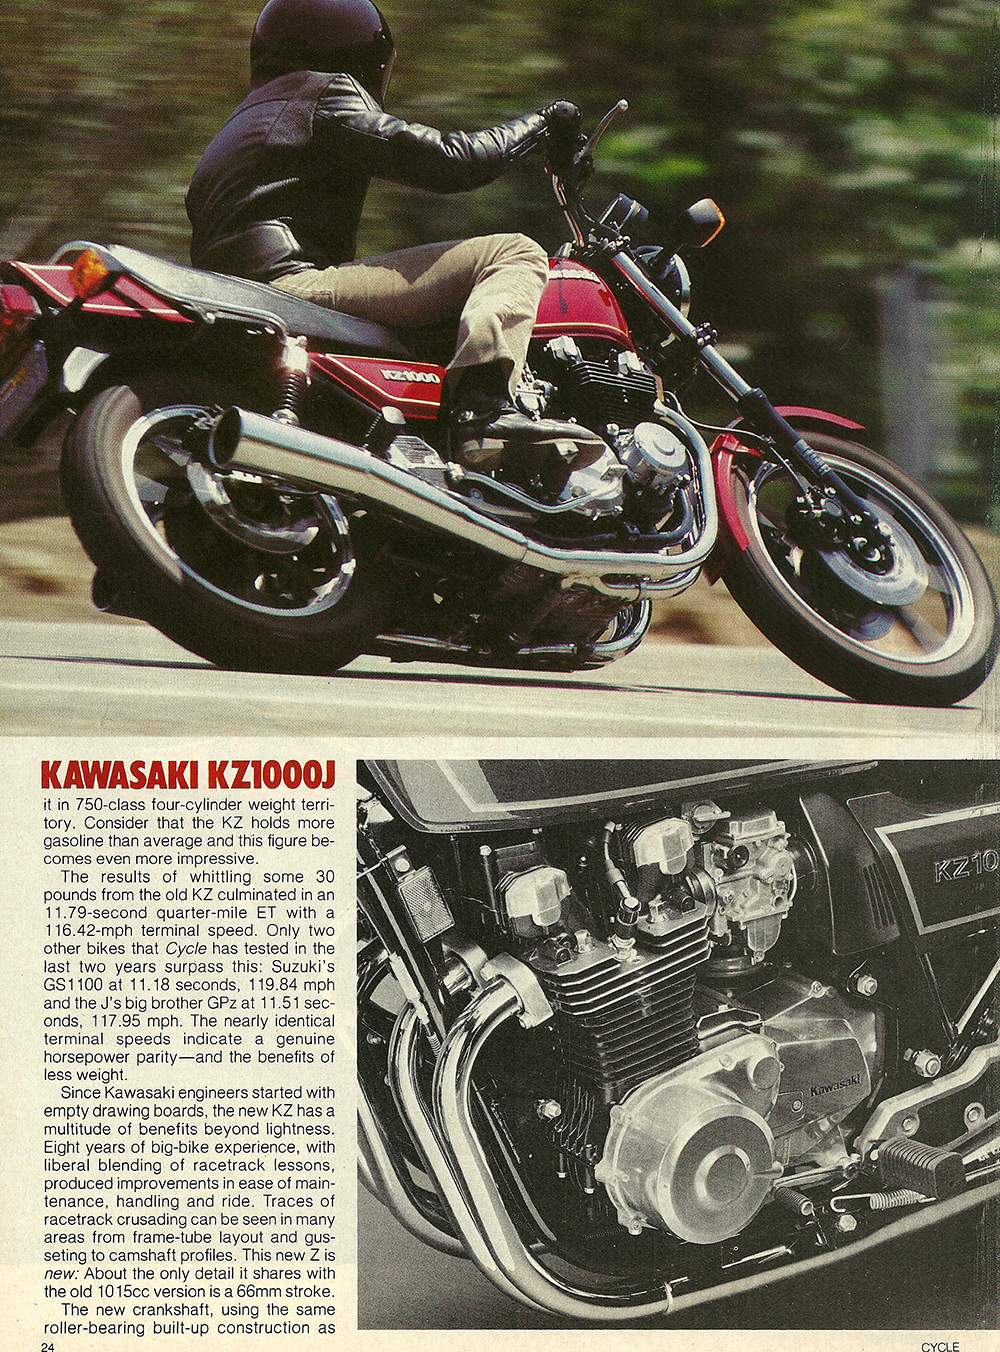 1981 Kawasaki KZ1000 J road test 03.jpg